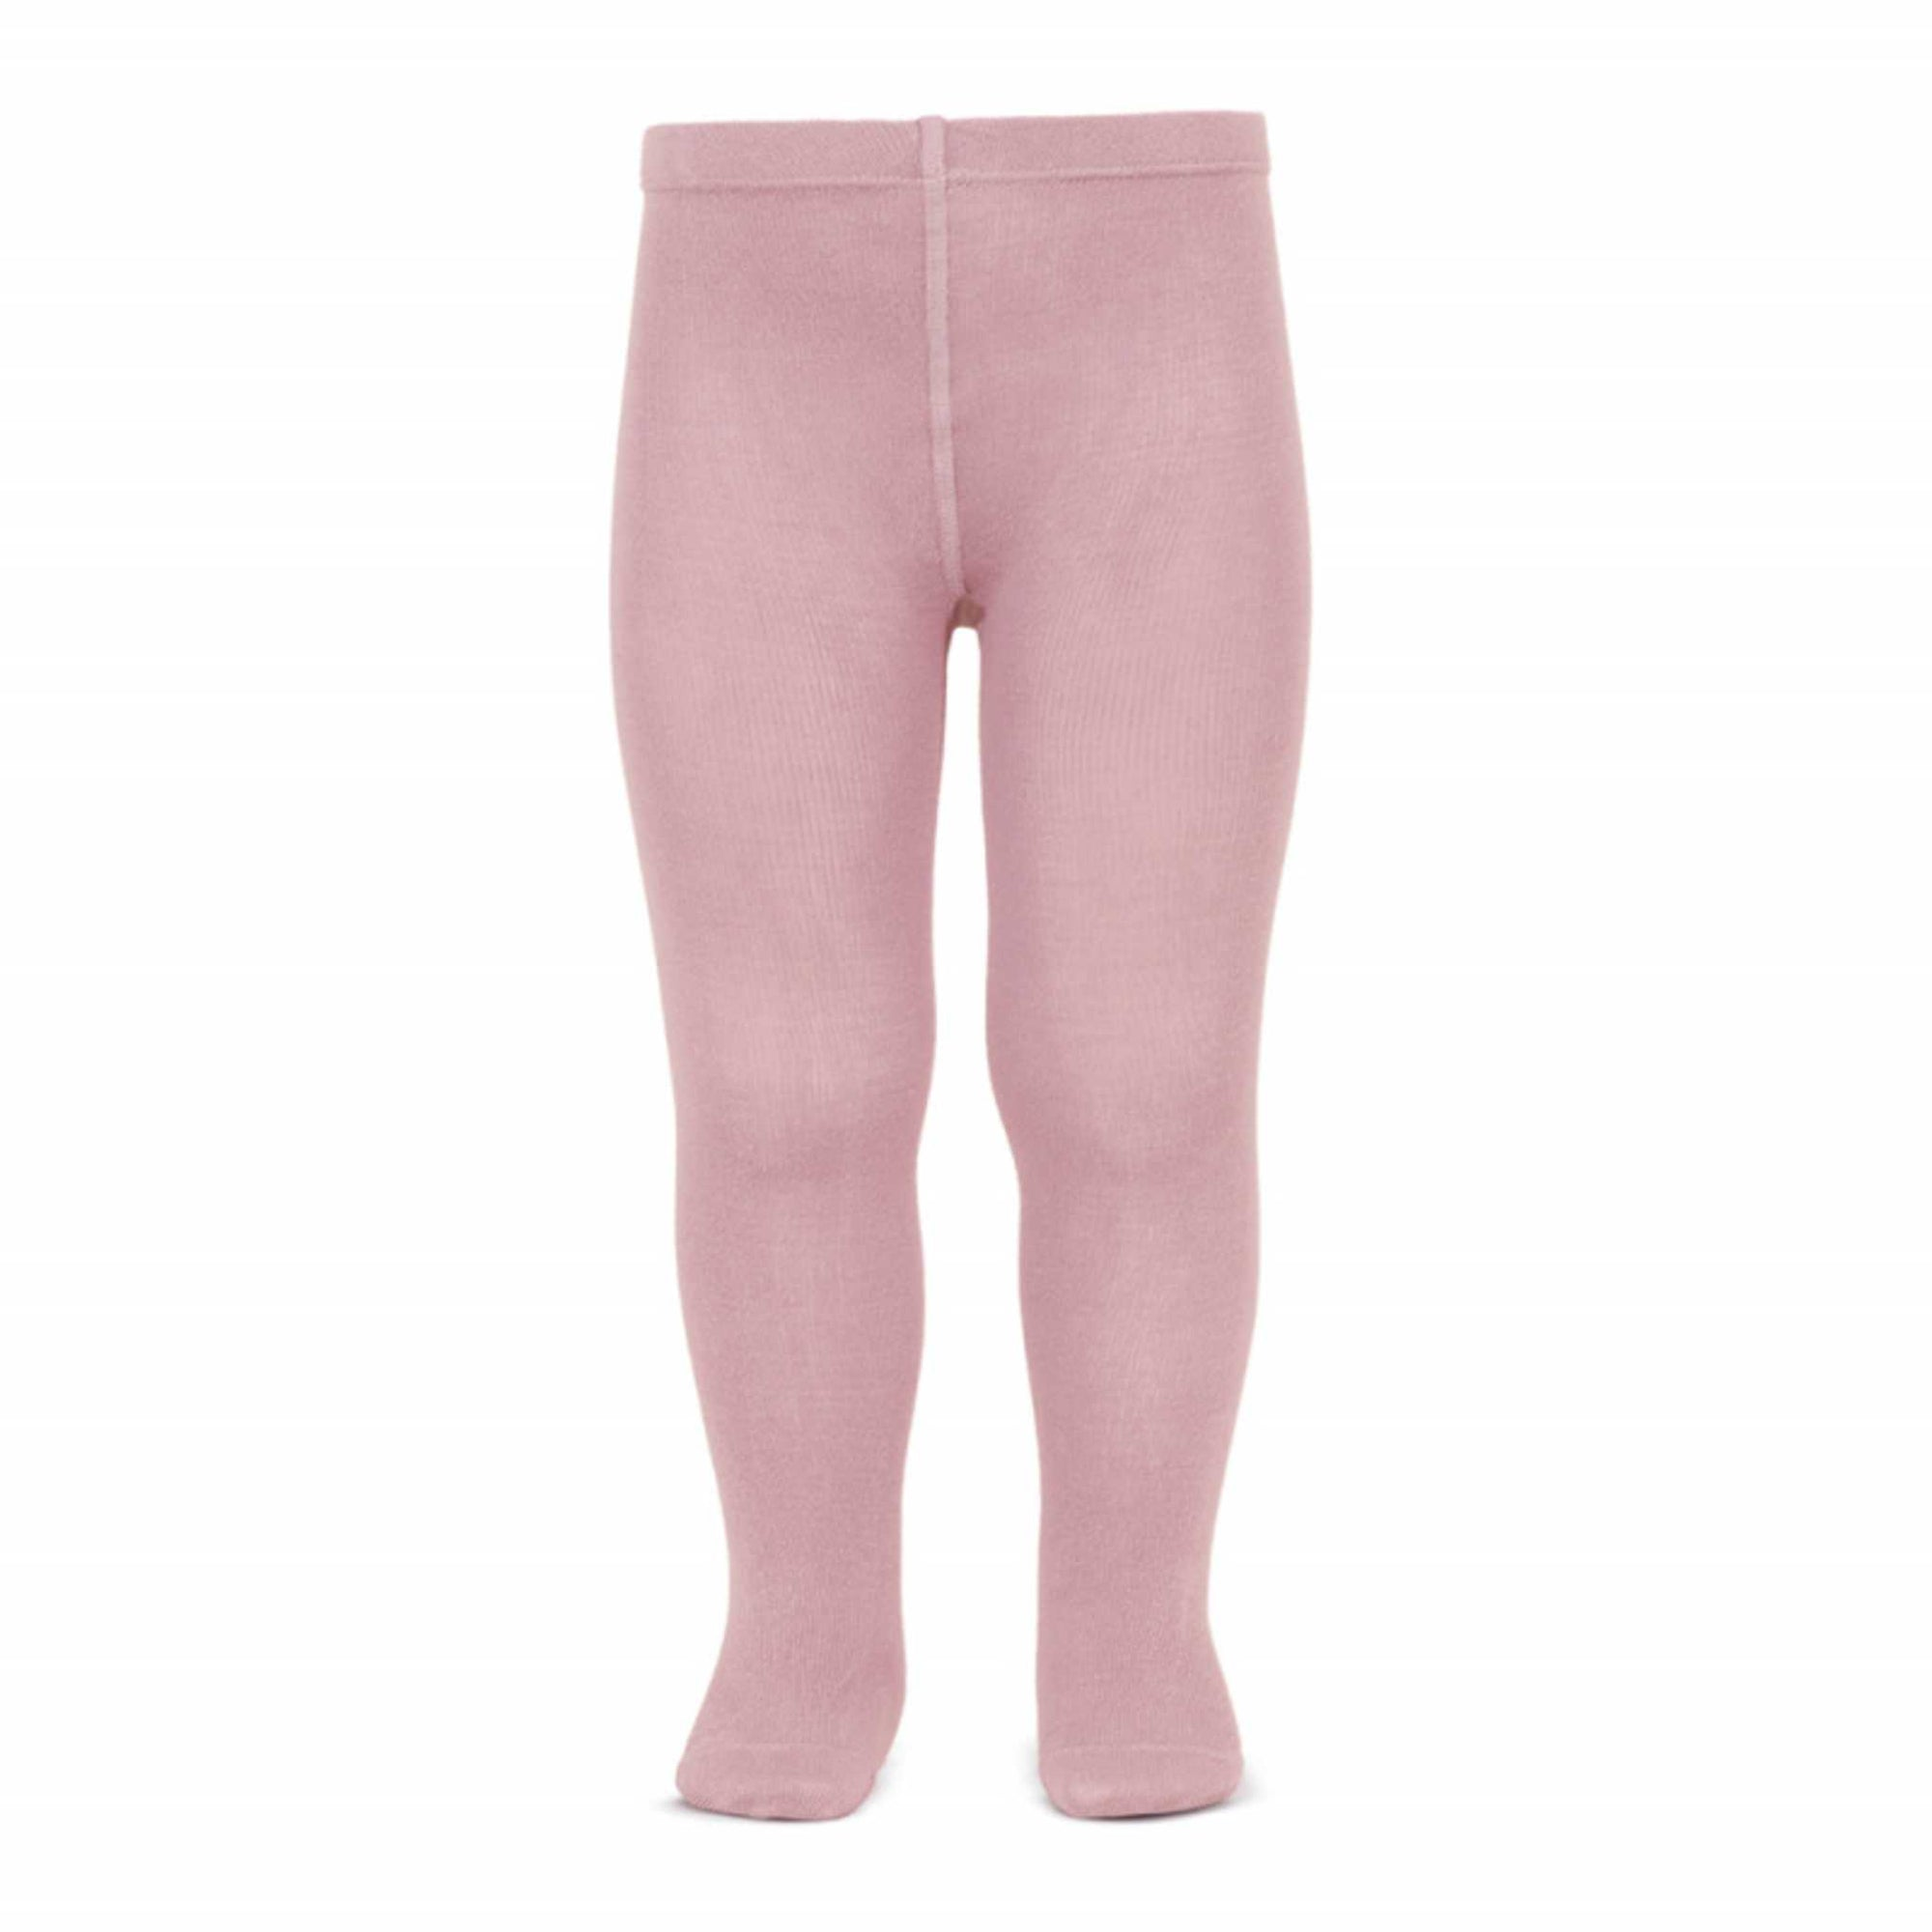 Basic Plain Tights-Accessories-Condor Barcelona-Pale Pink 256-Little Soldiers